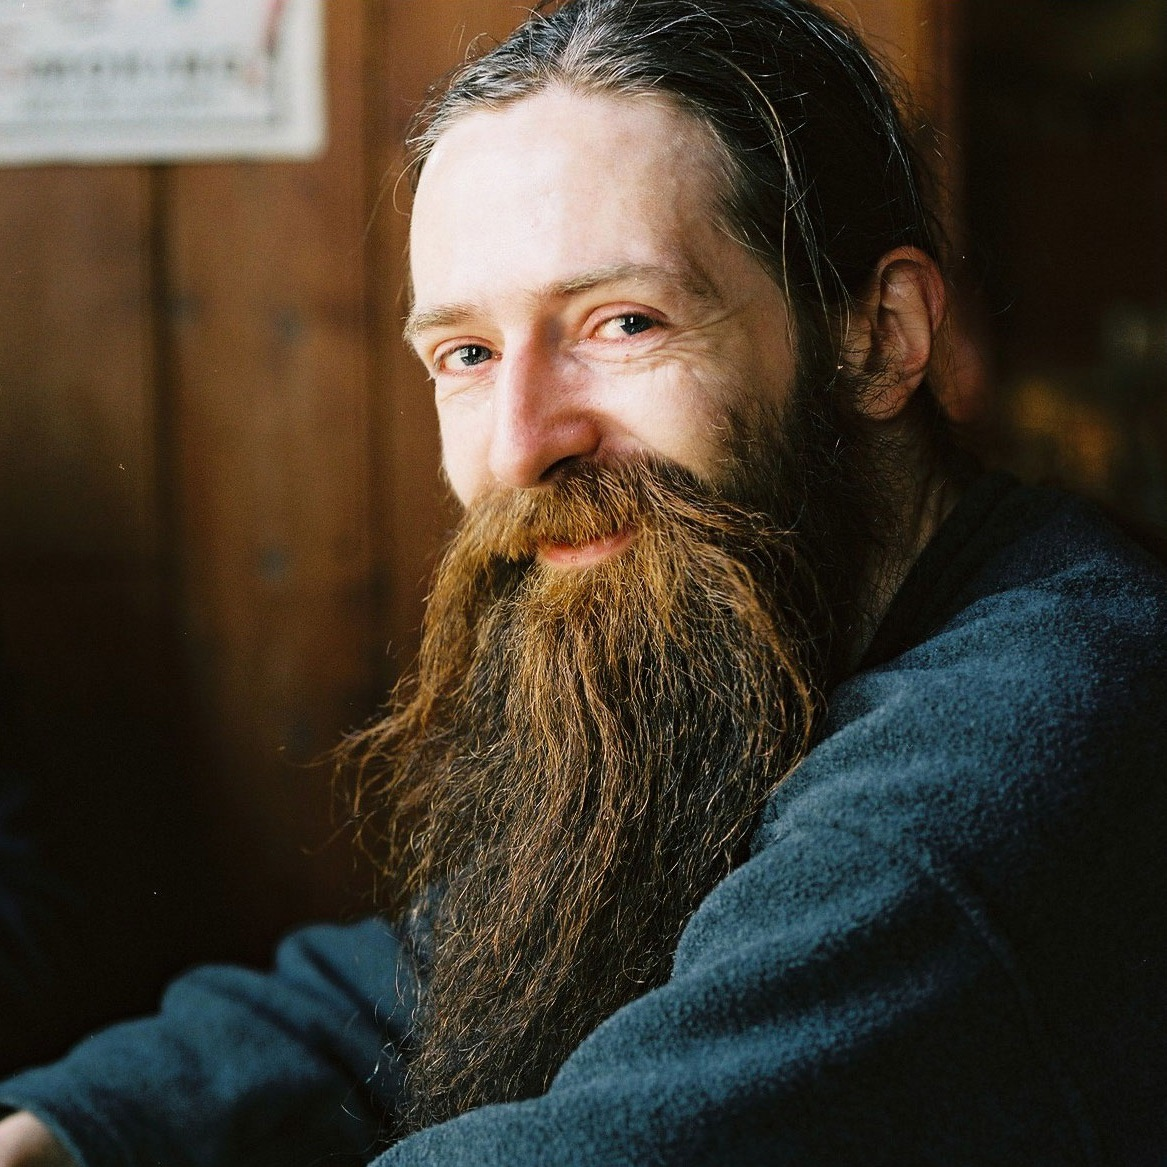 Dr. Aubrey de Grey - SENS Research Foundation